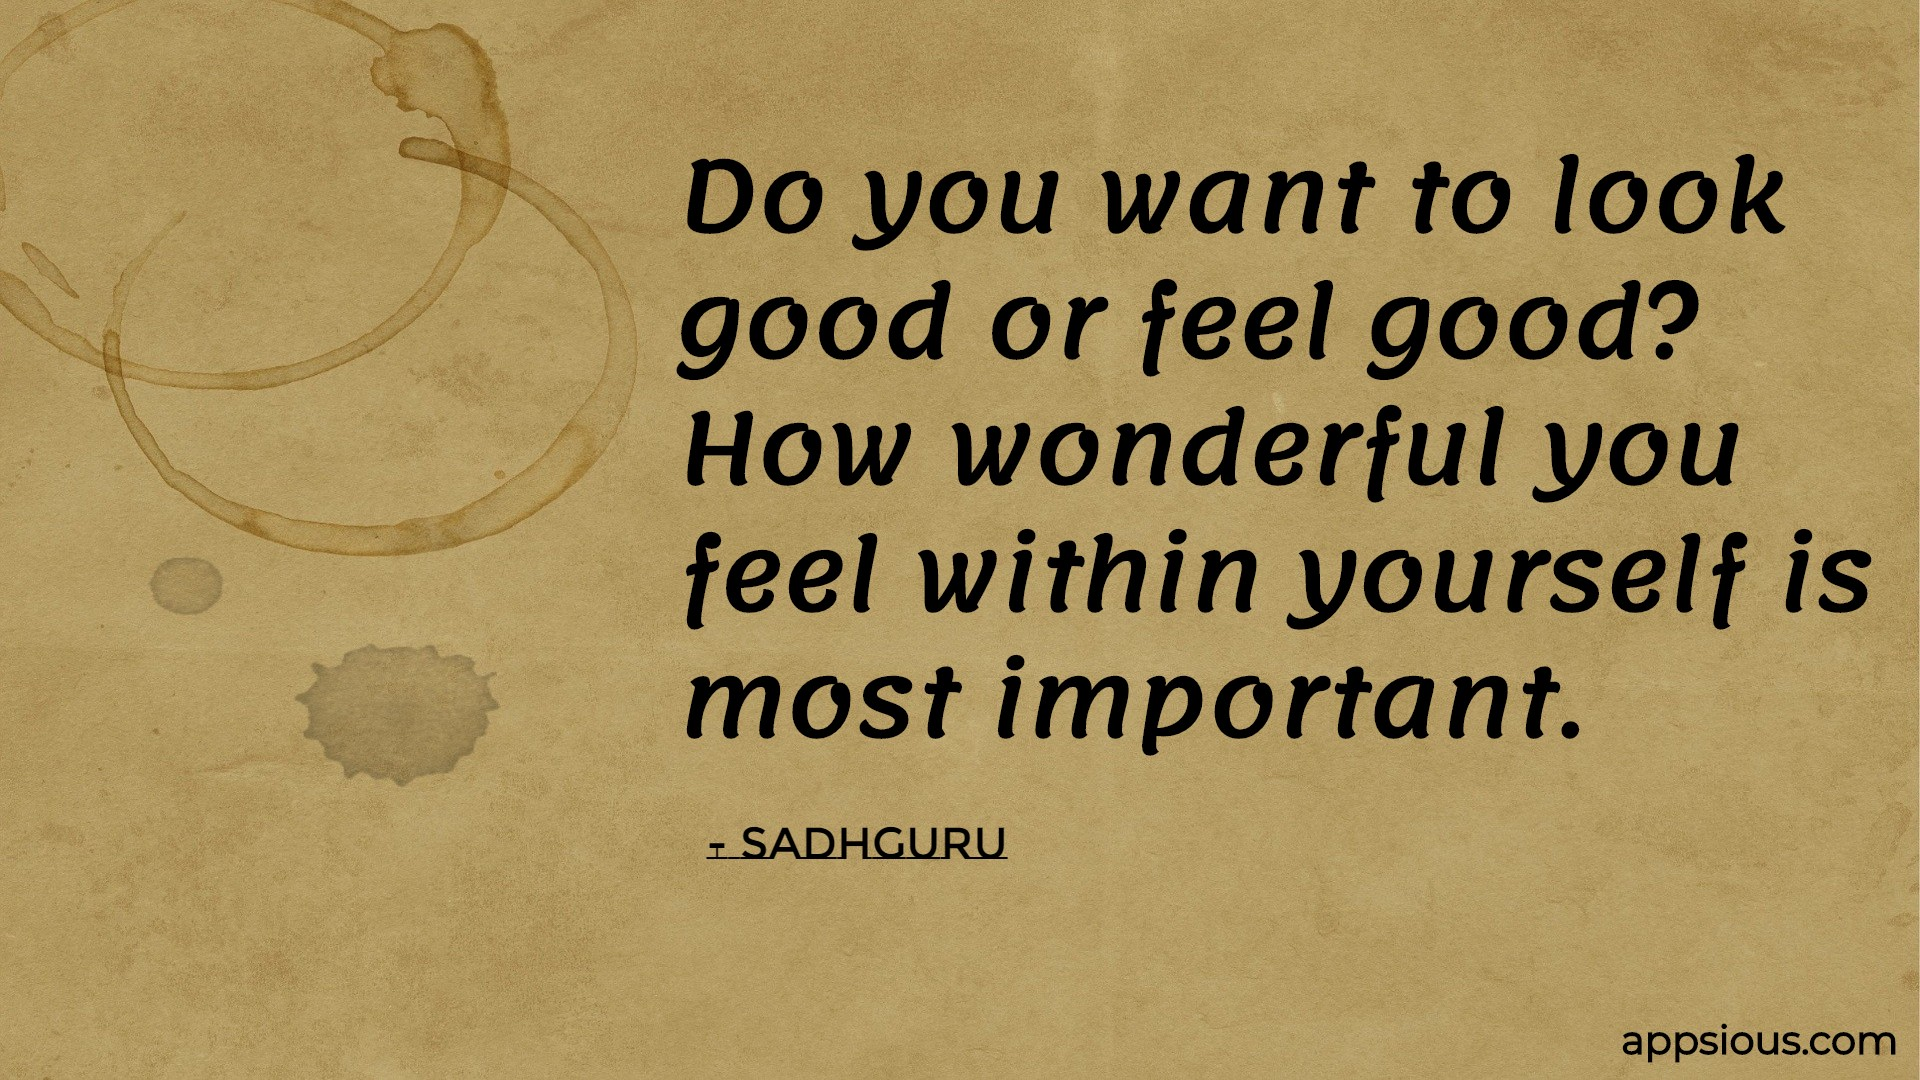 Do you want to look good or feel good? How wonderful you feel within yourself is most important.